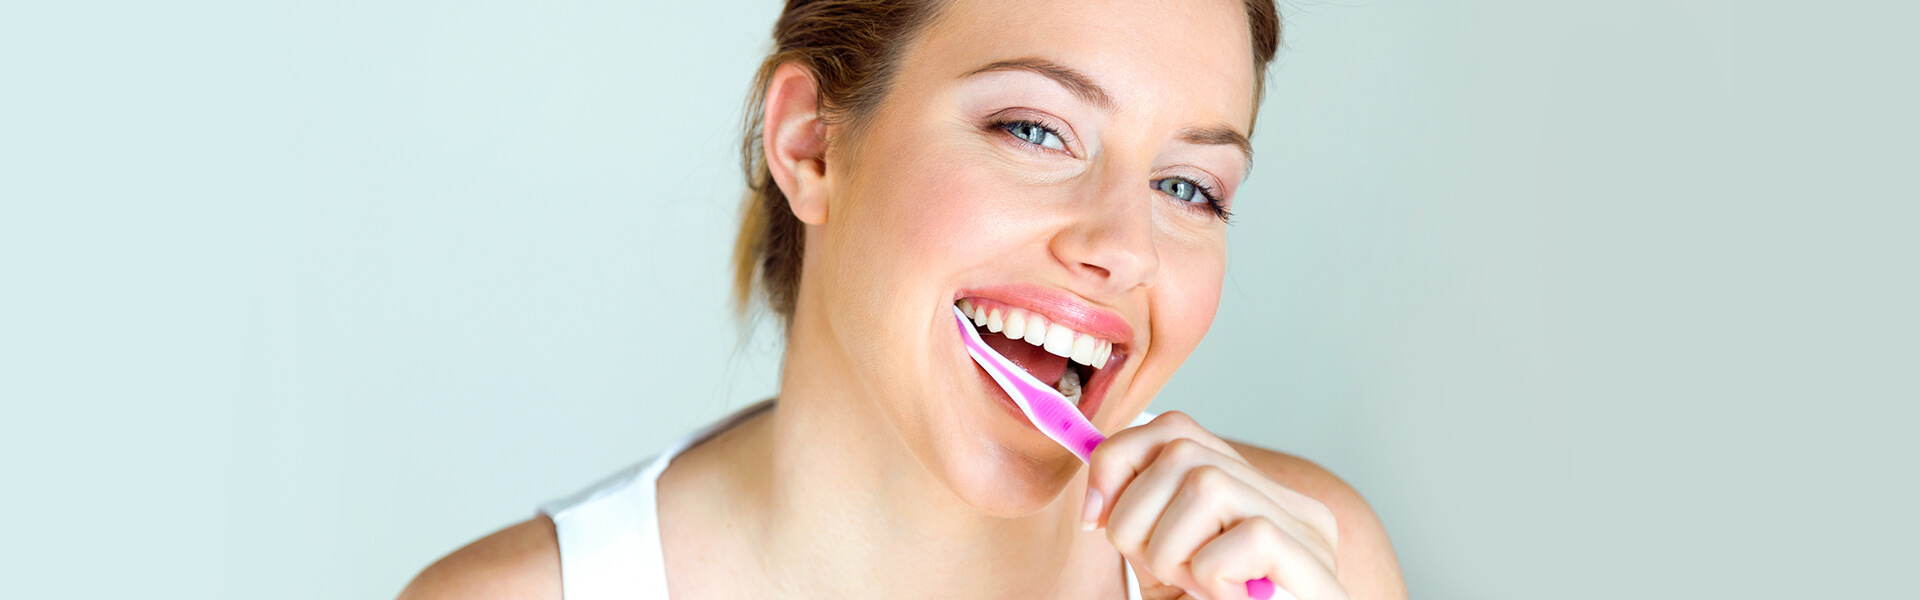 Improve Your Brushing and Flossing with These Tips